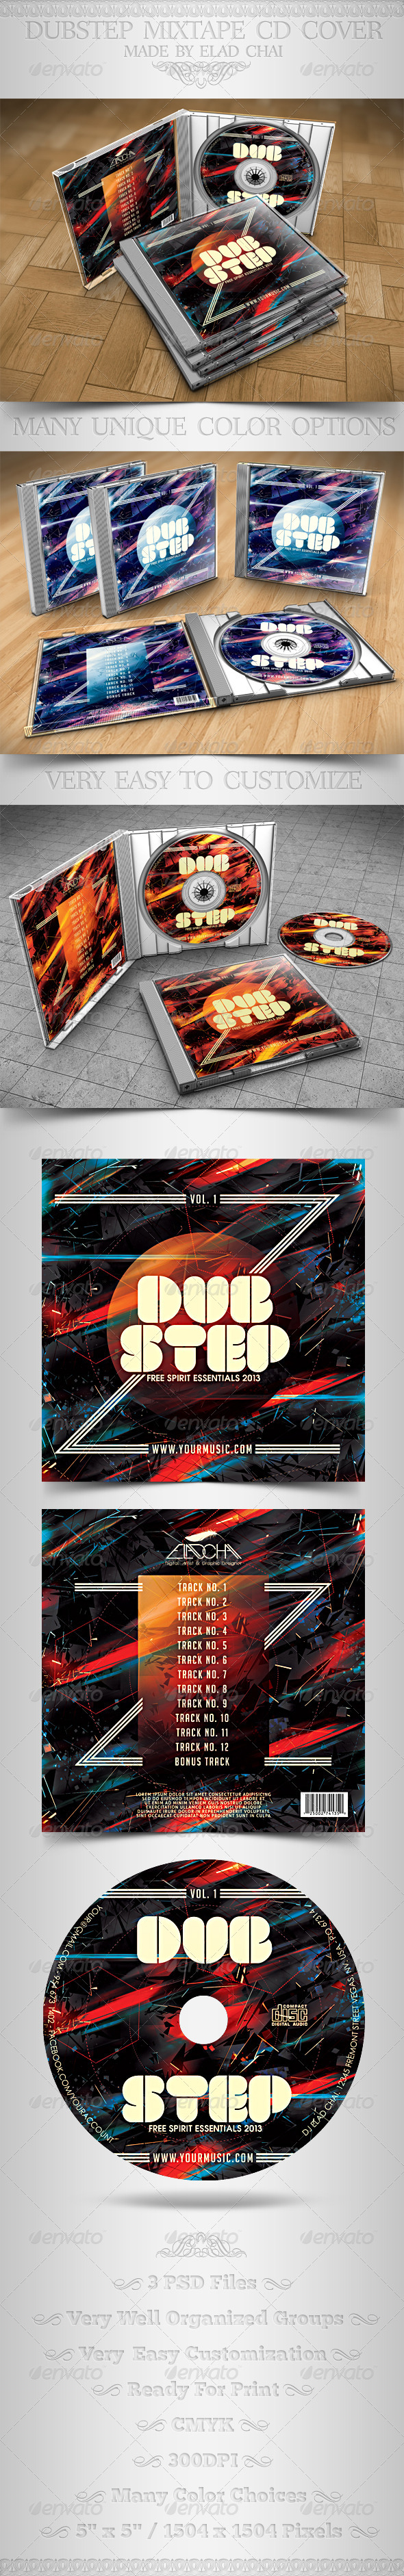 GraphicRiver Dubstep Mixtape CD Cover Insert & Label 4047580